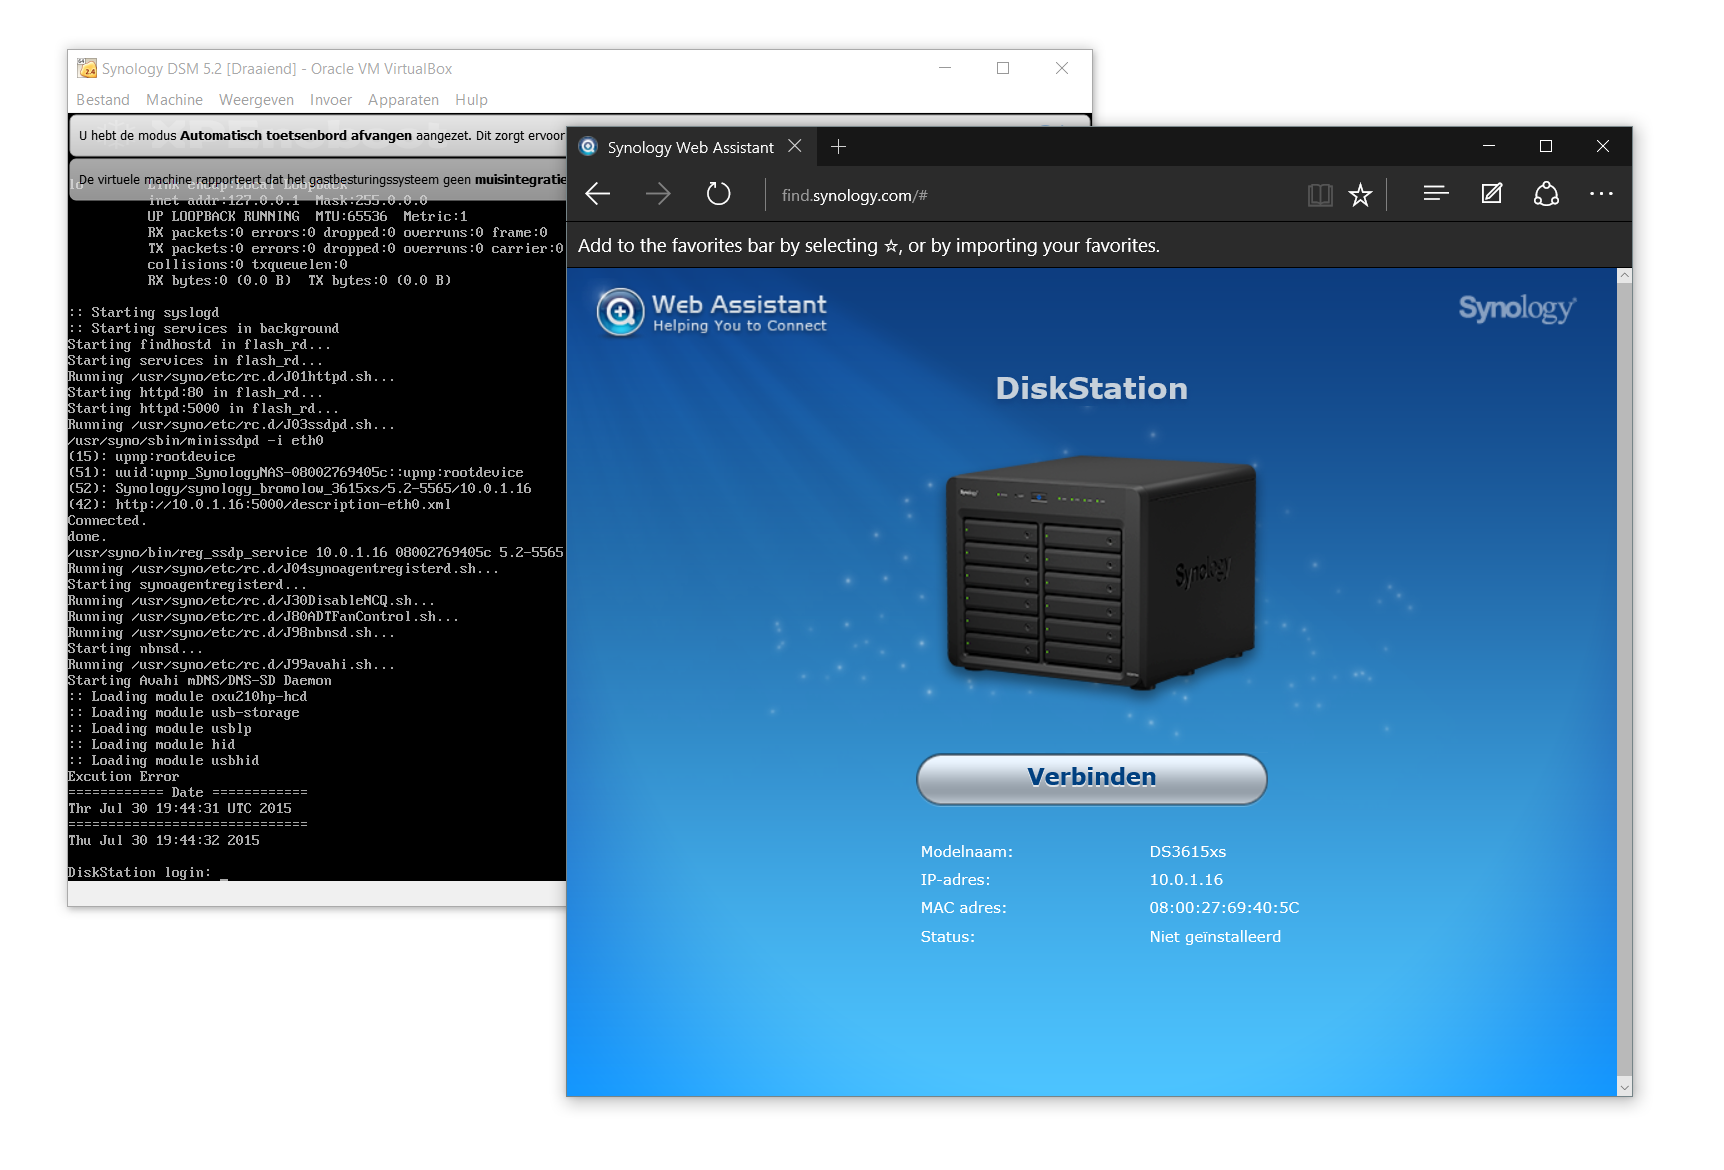 Synology DSM werkend in VirtualBox